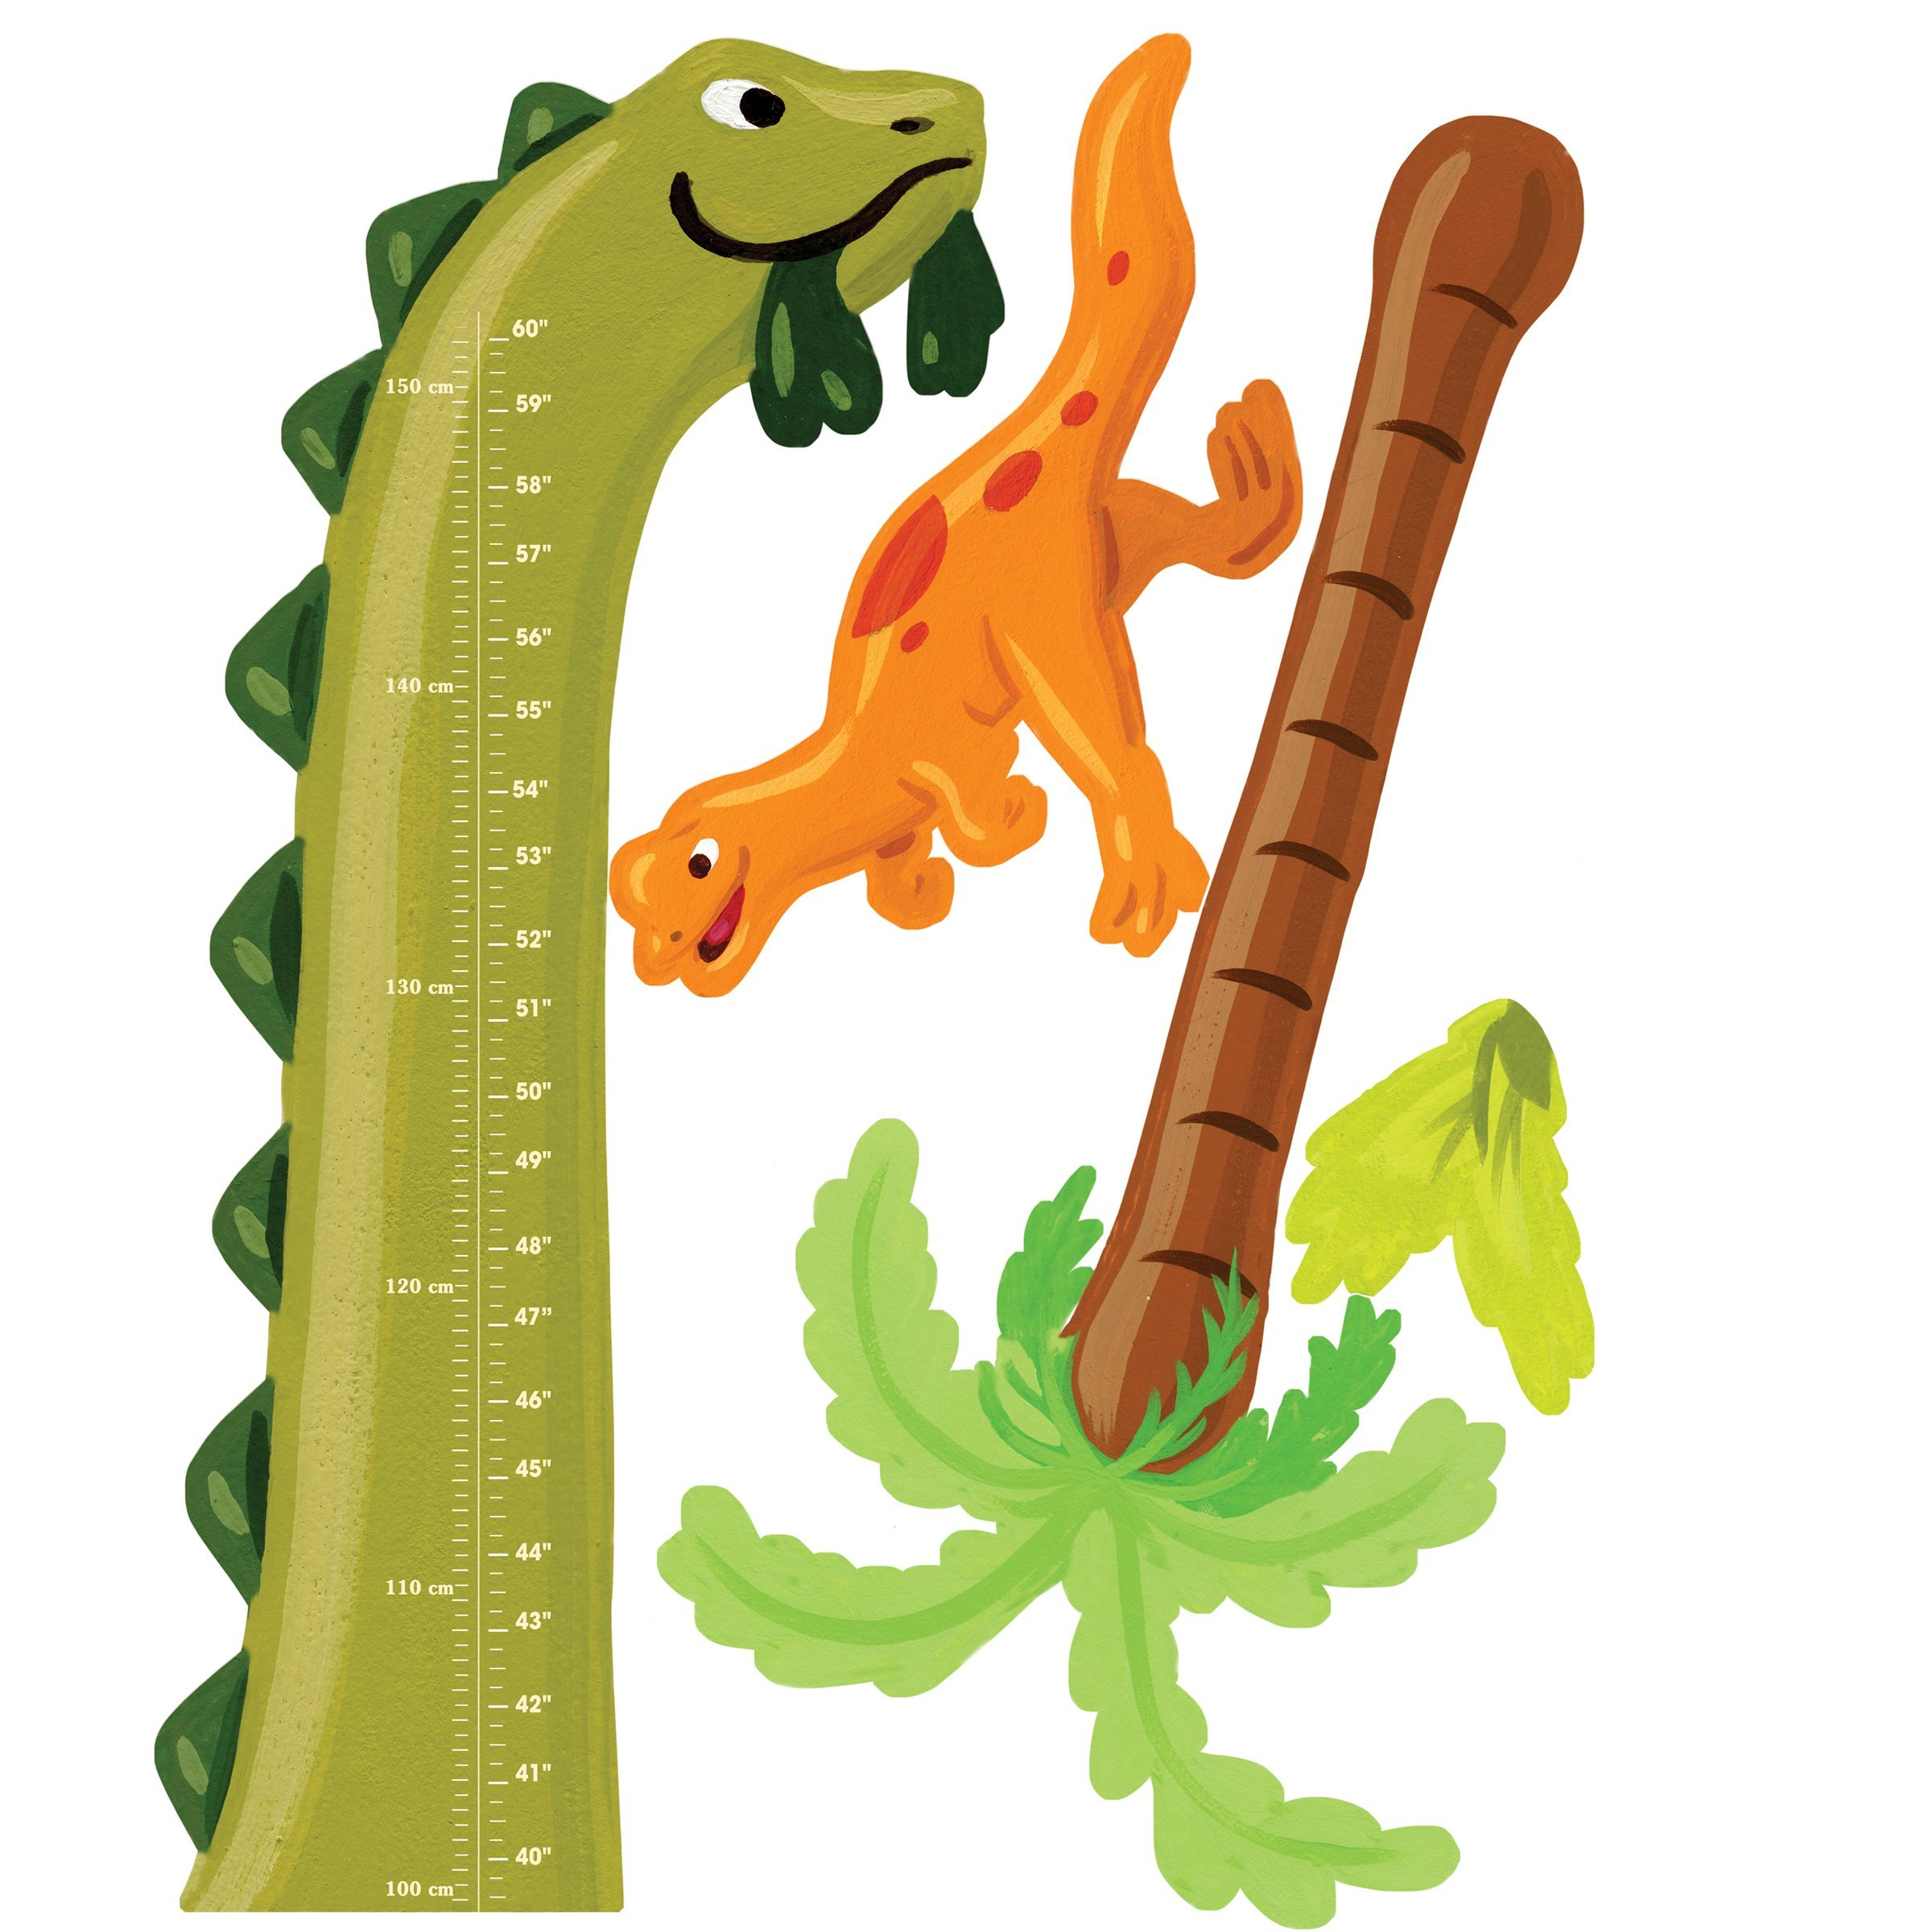 Wallies Wall Decals, Dino Growth Chart Wall Sticker, 35-inch x 41-1/2-inch